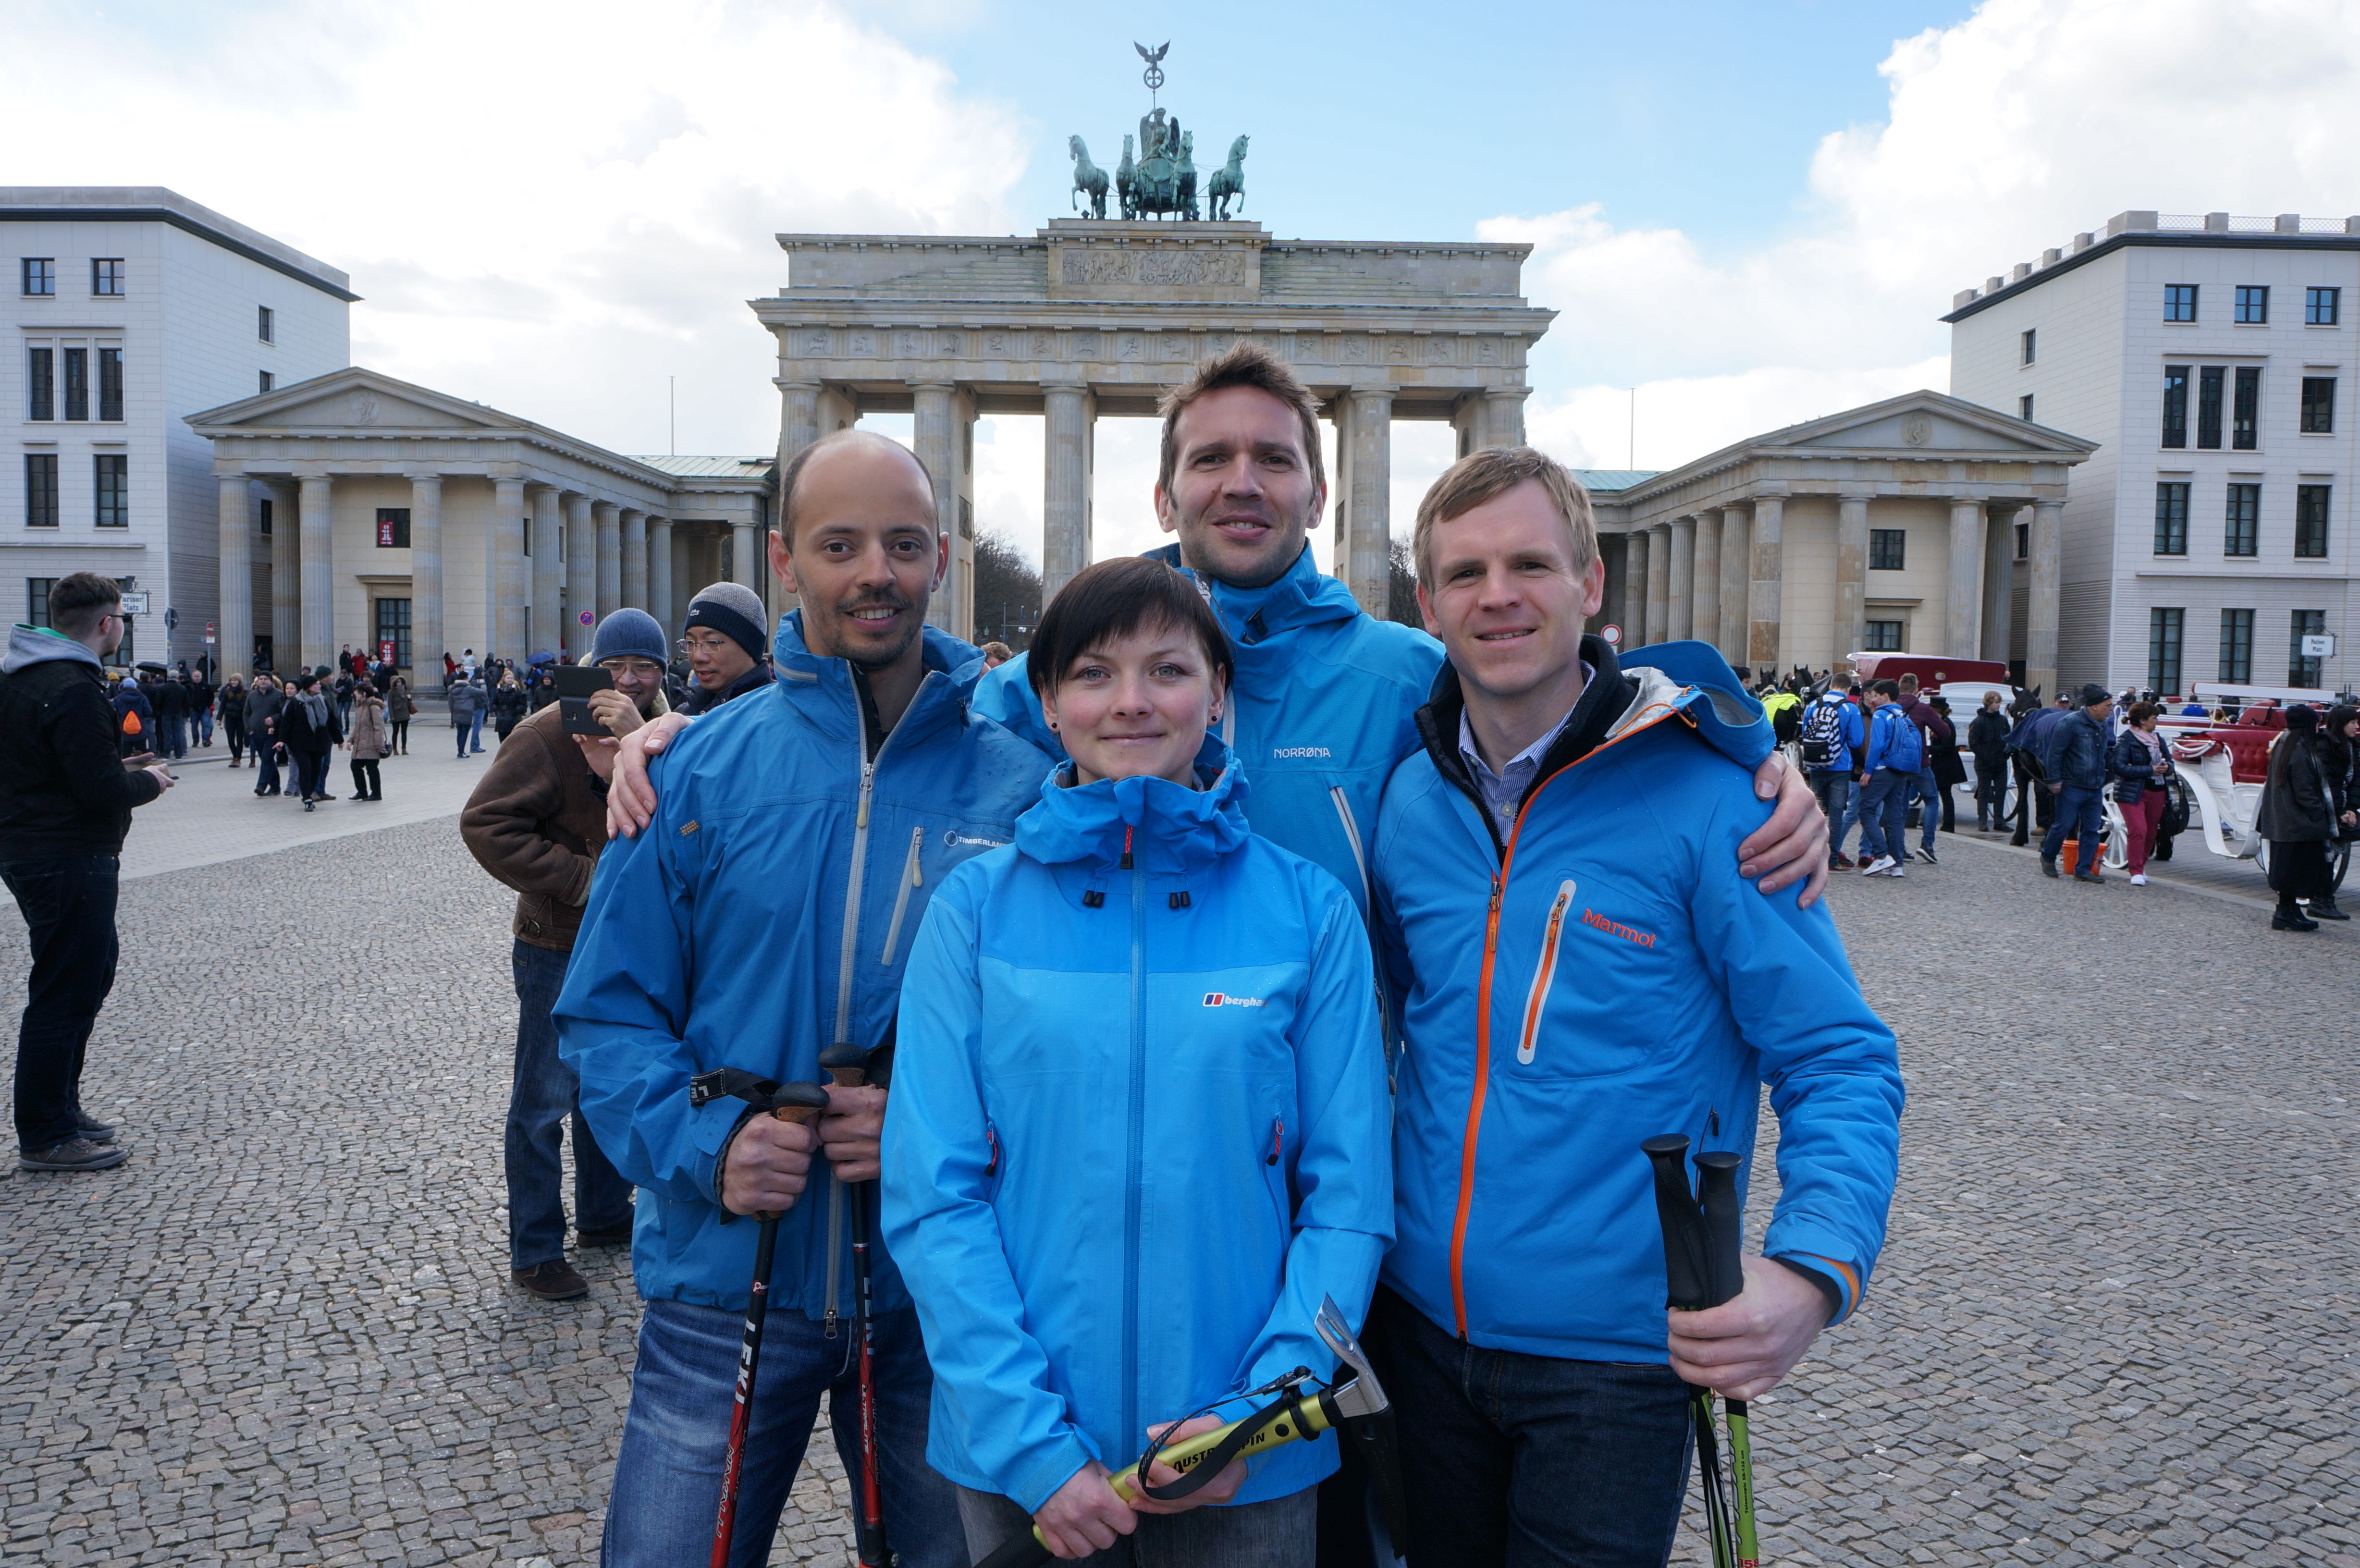 Patagonian Expedition Race 2016, Patagonia, Chile, Team Patagonia Germany Team Photo